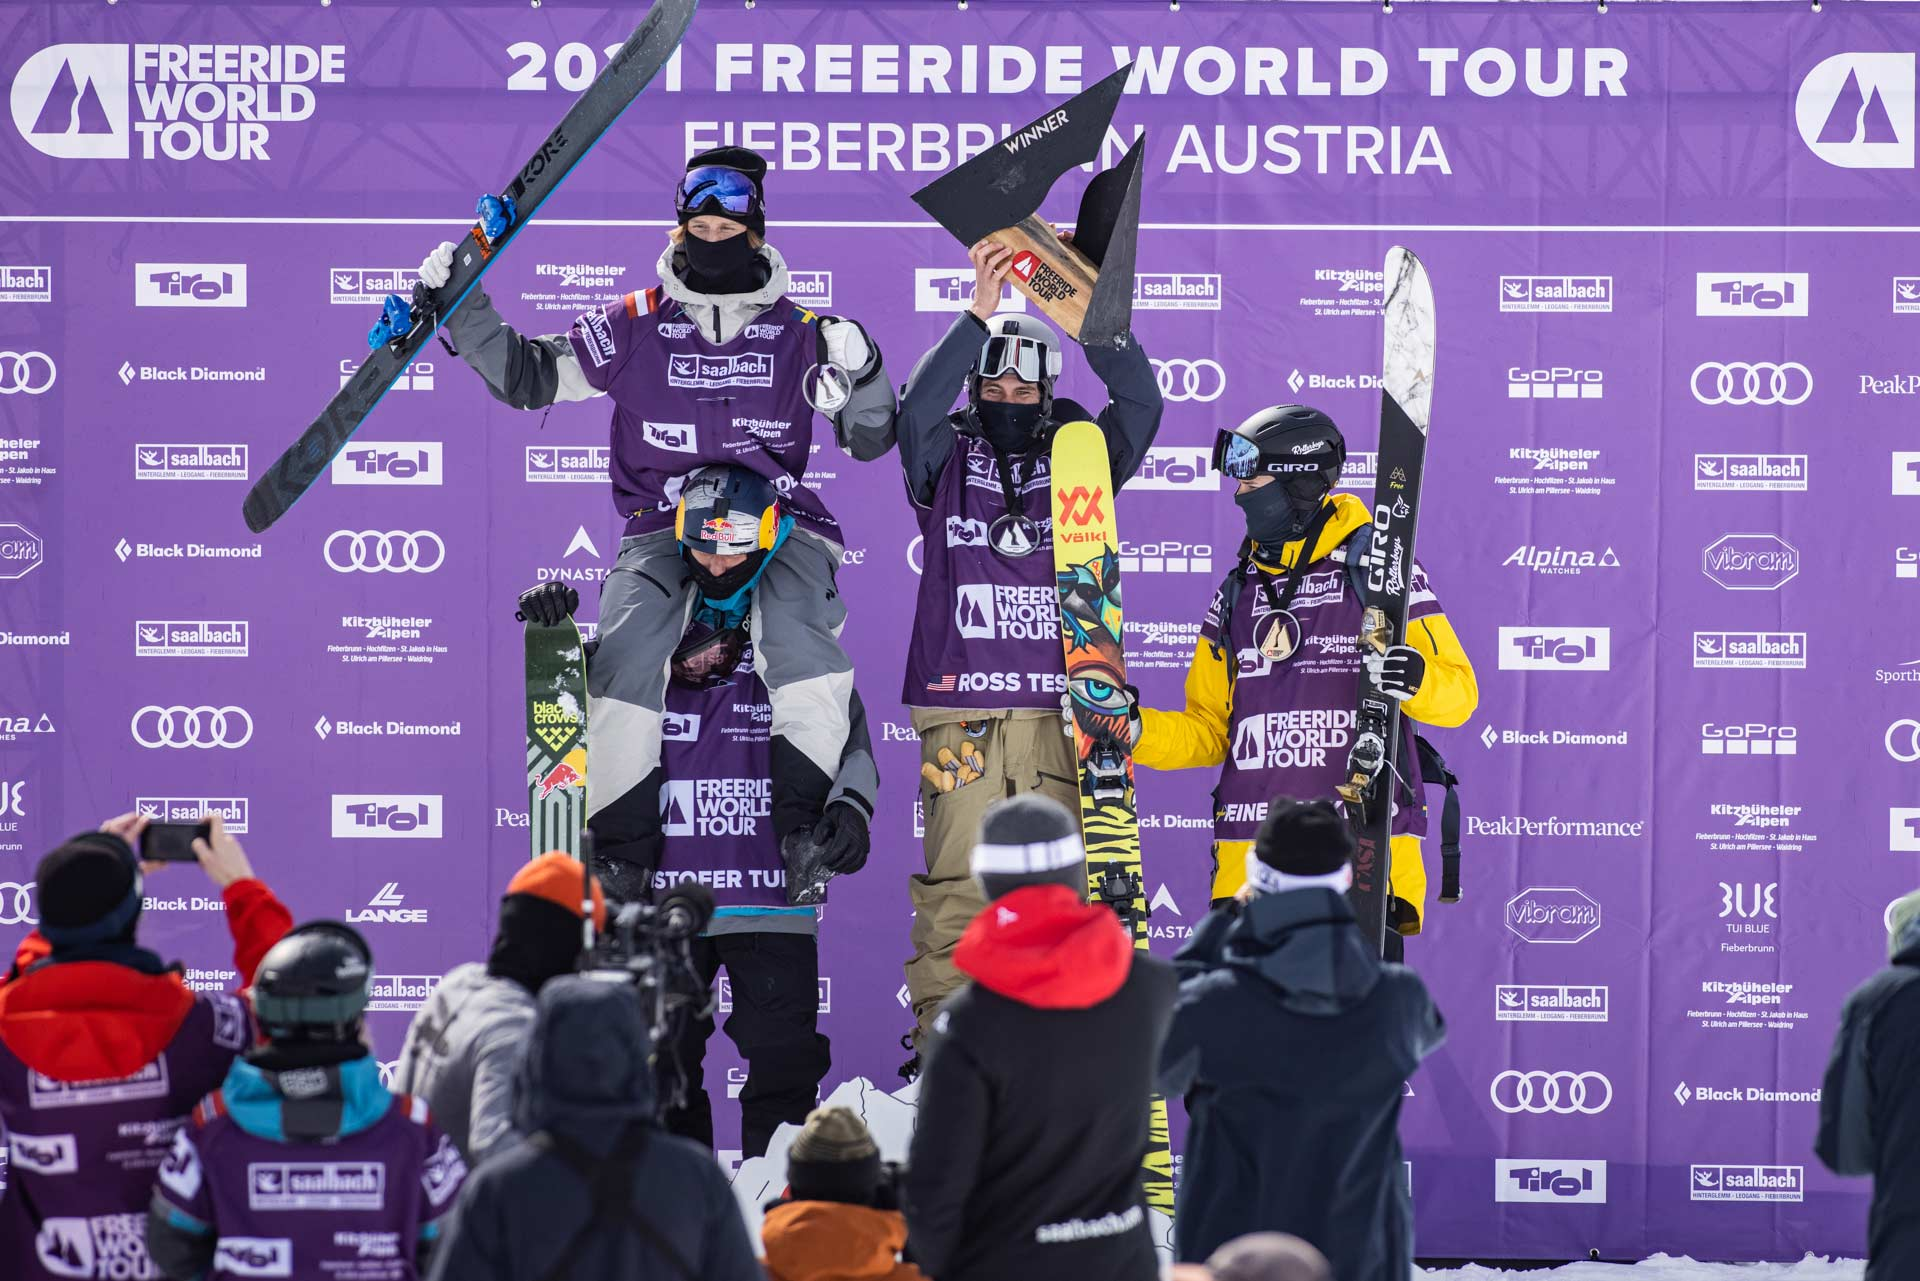 Freeride World Tour 2021 #3 in Fieberbrunn: Die Ergebnisse & Winning Runs